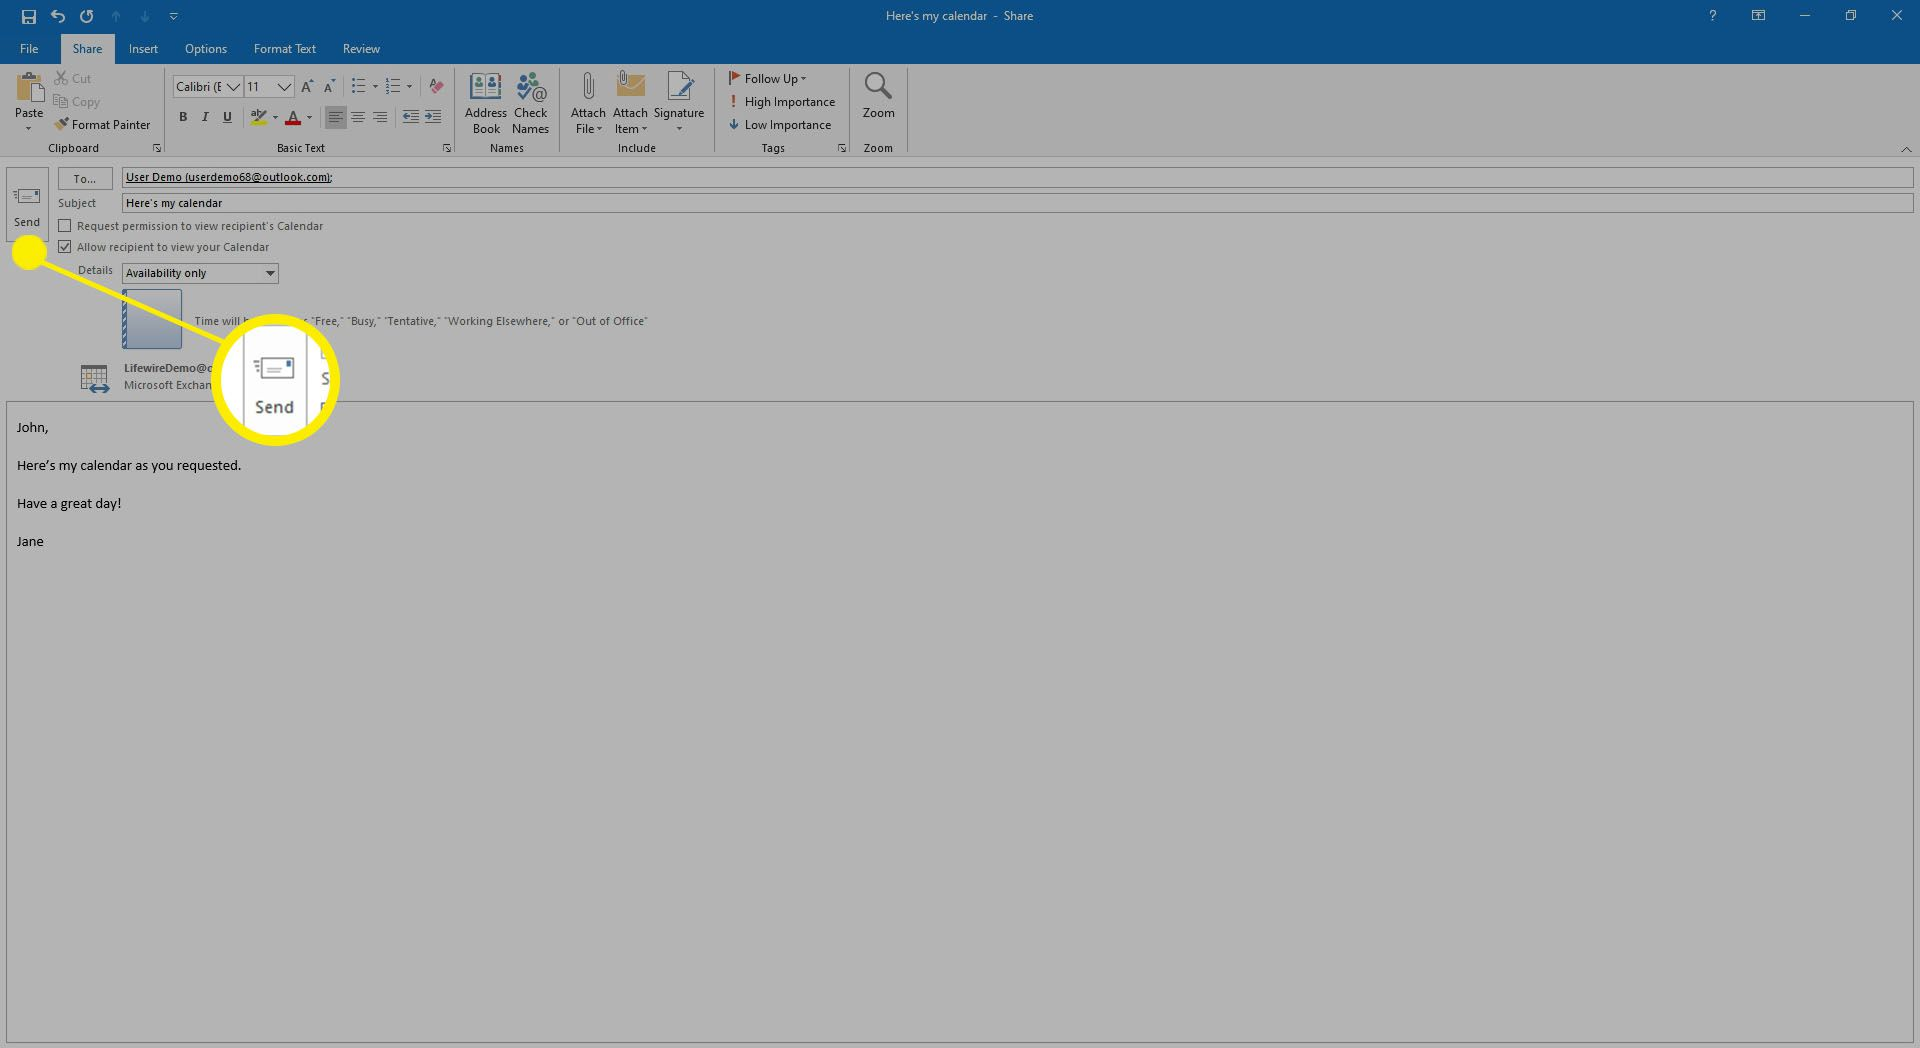 Entering in a message to go with the calendar sharing invitation in Outlook.